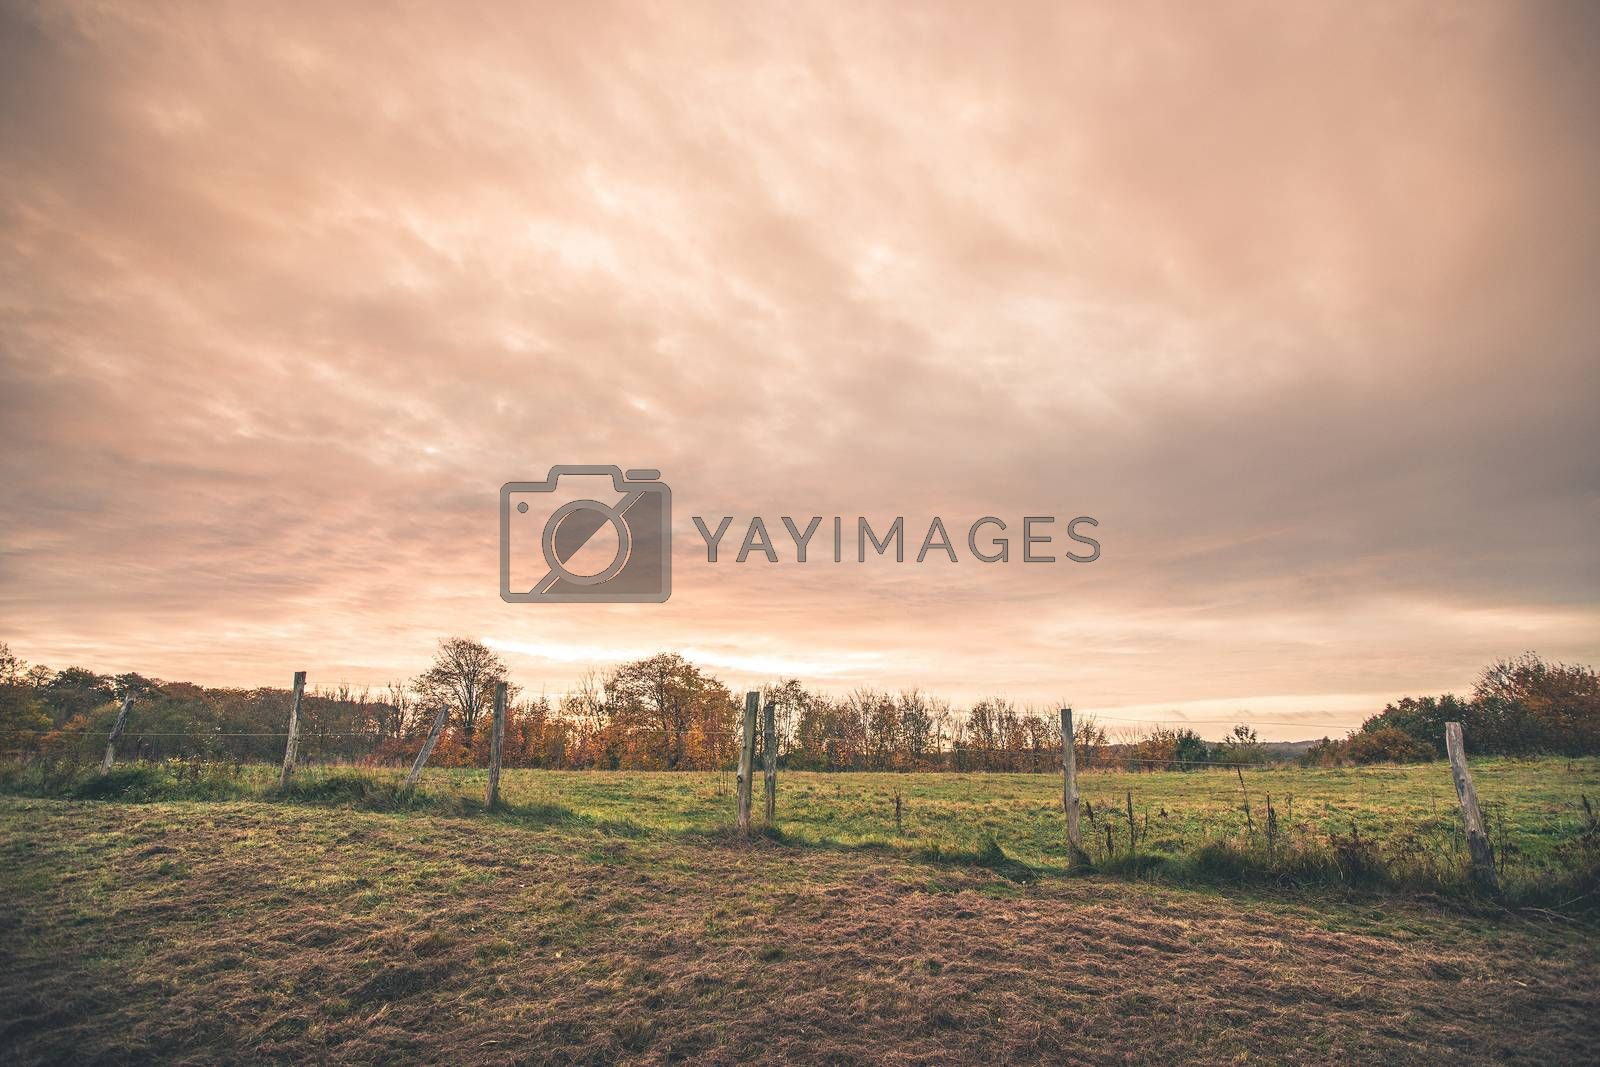 Countryside landscape with a wired fence on a field in the sunset in a rural environment